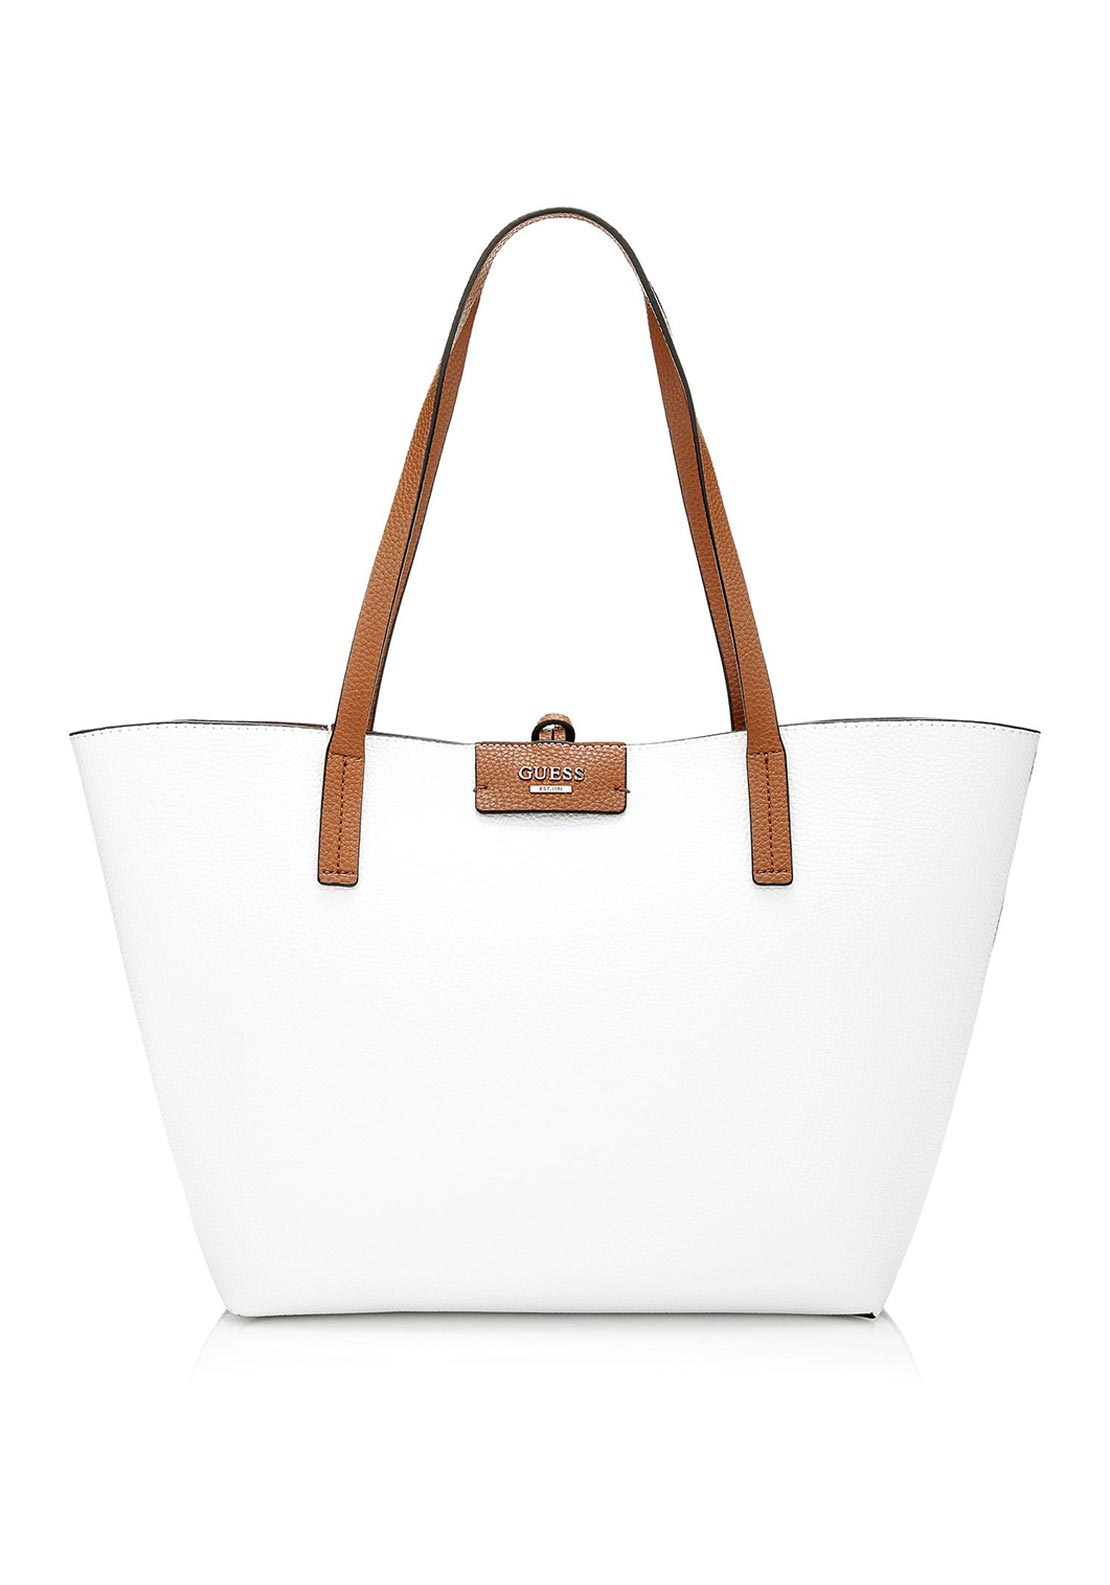 Guess Bobbi Reversible Tote Bag, White